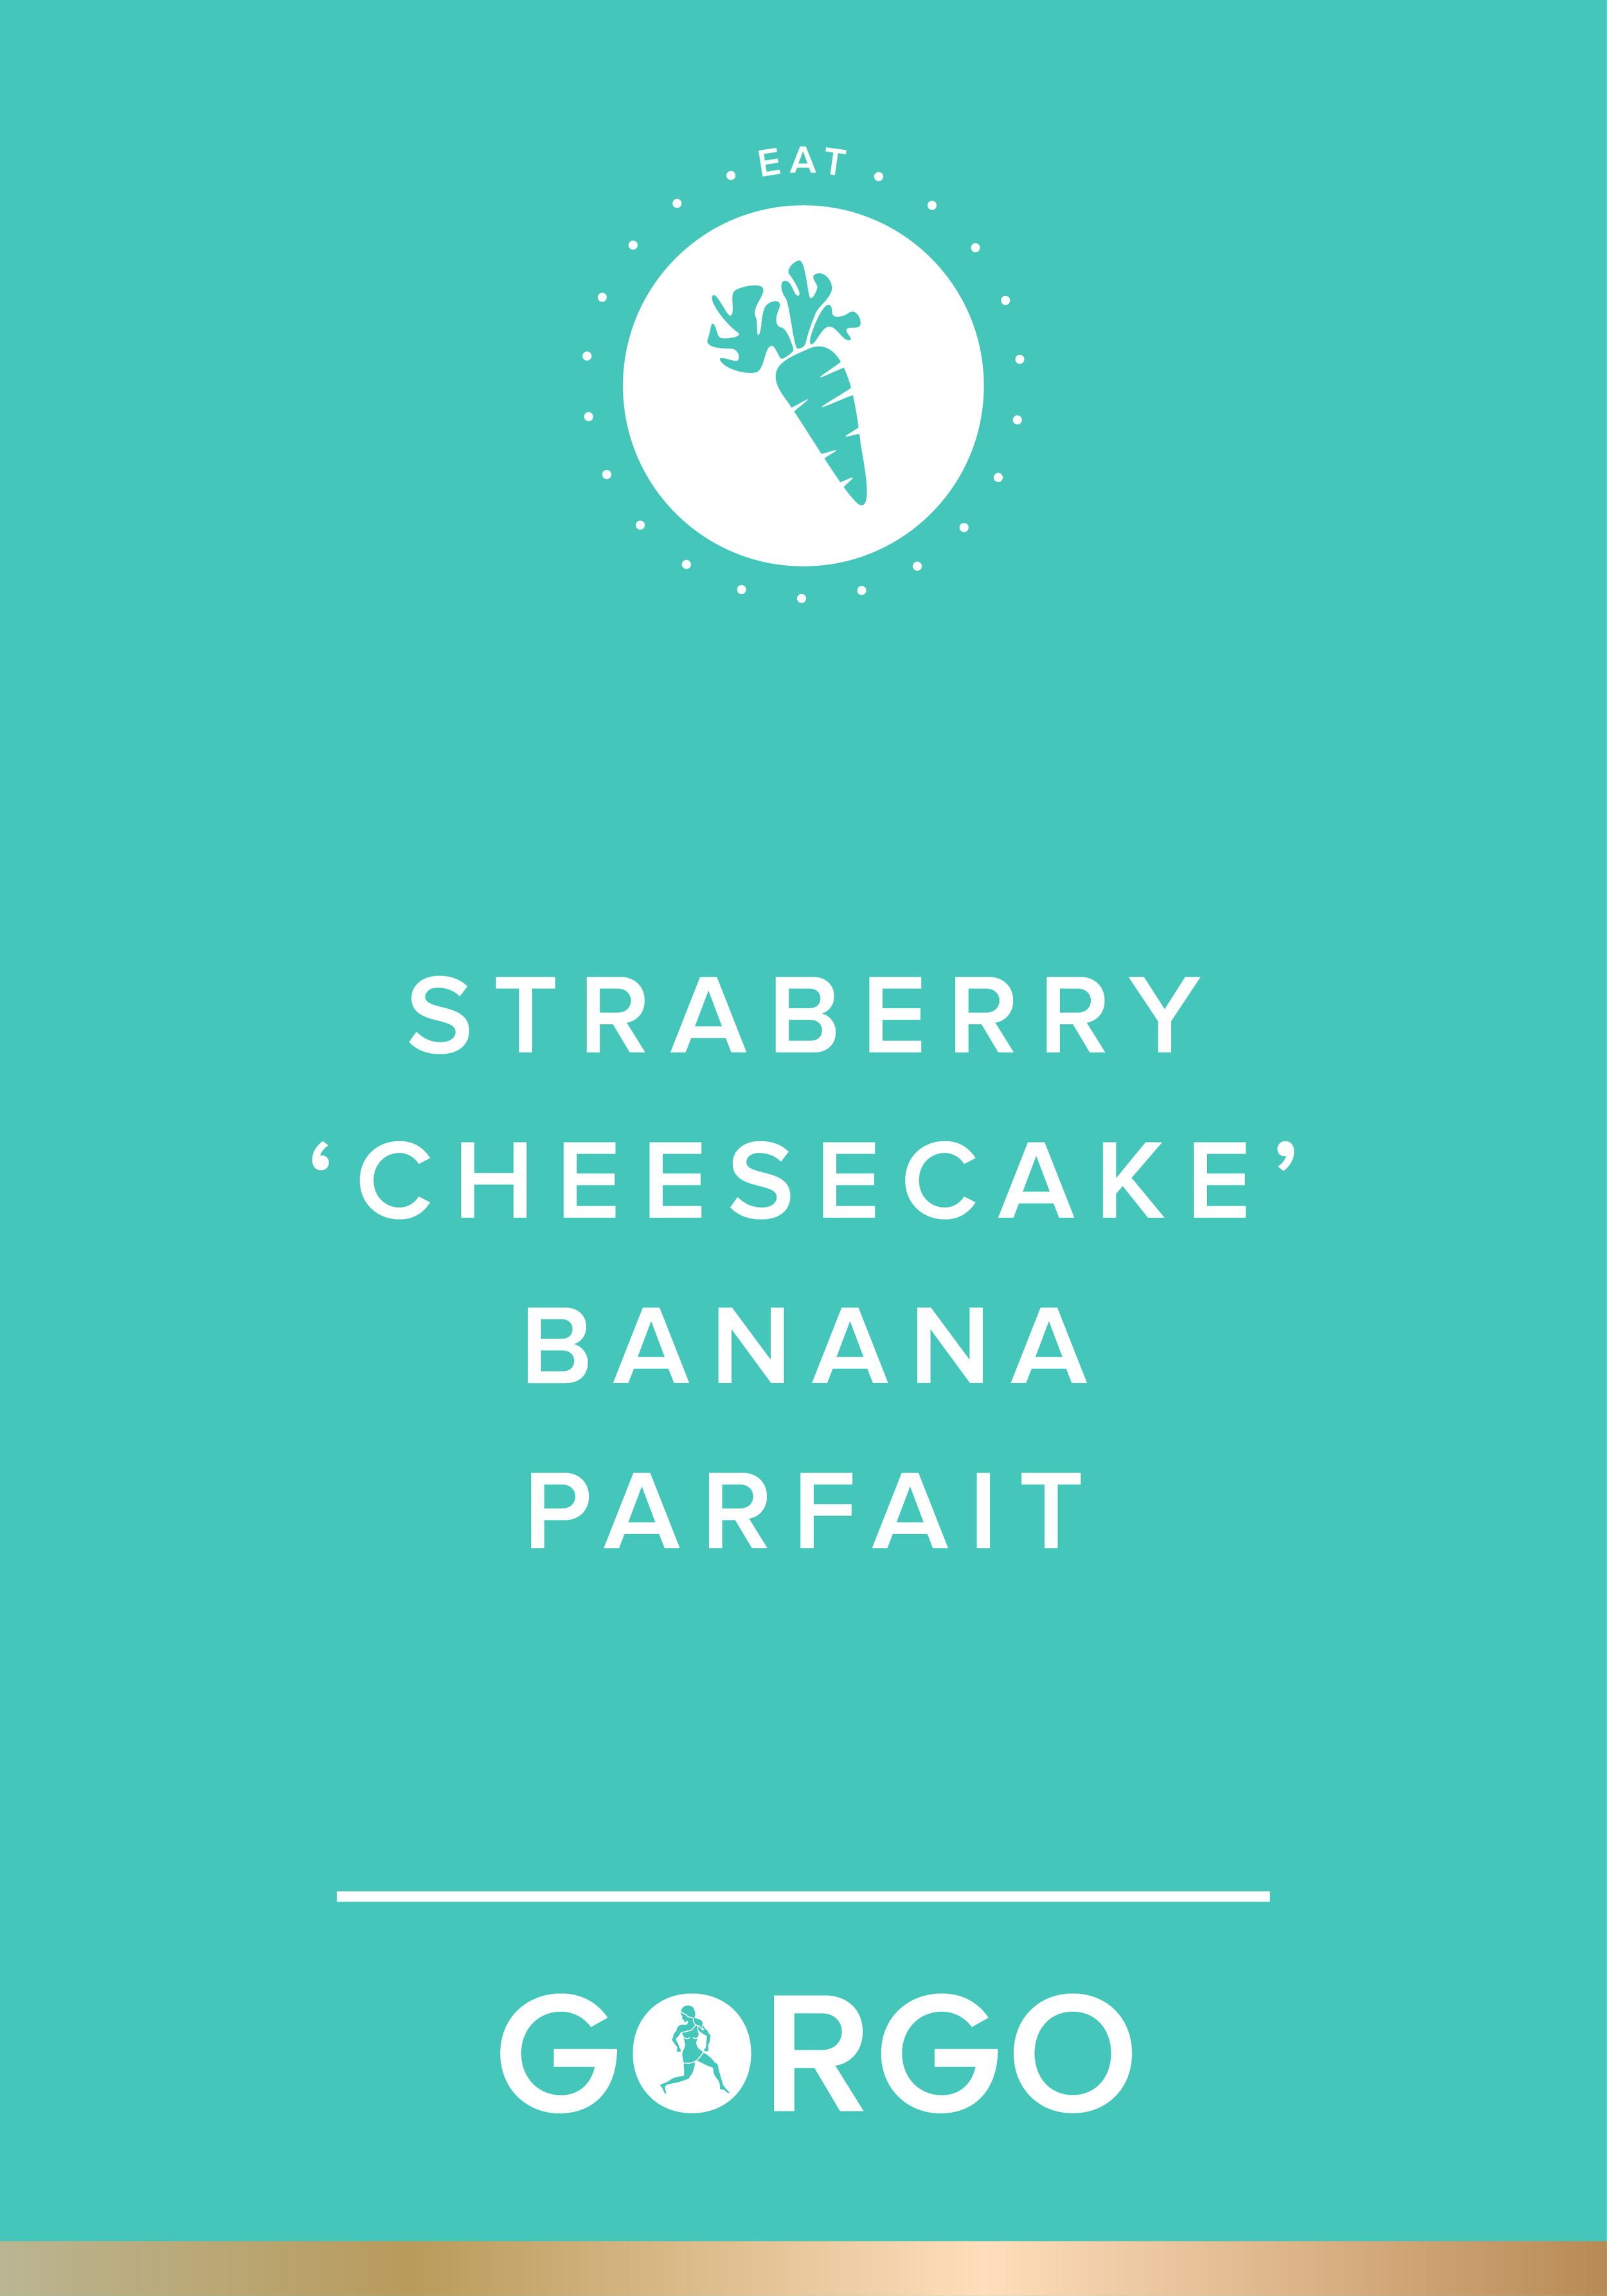 Strawberry Cheesecake Banana Parfait #gorgogirl #eat